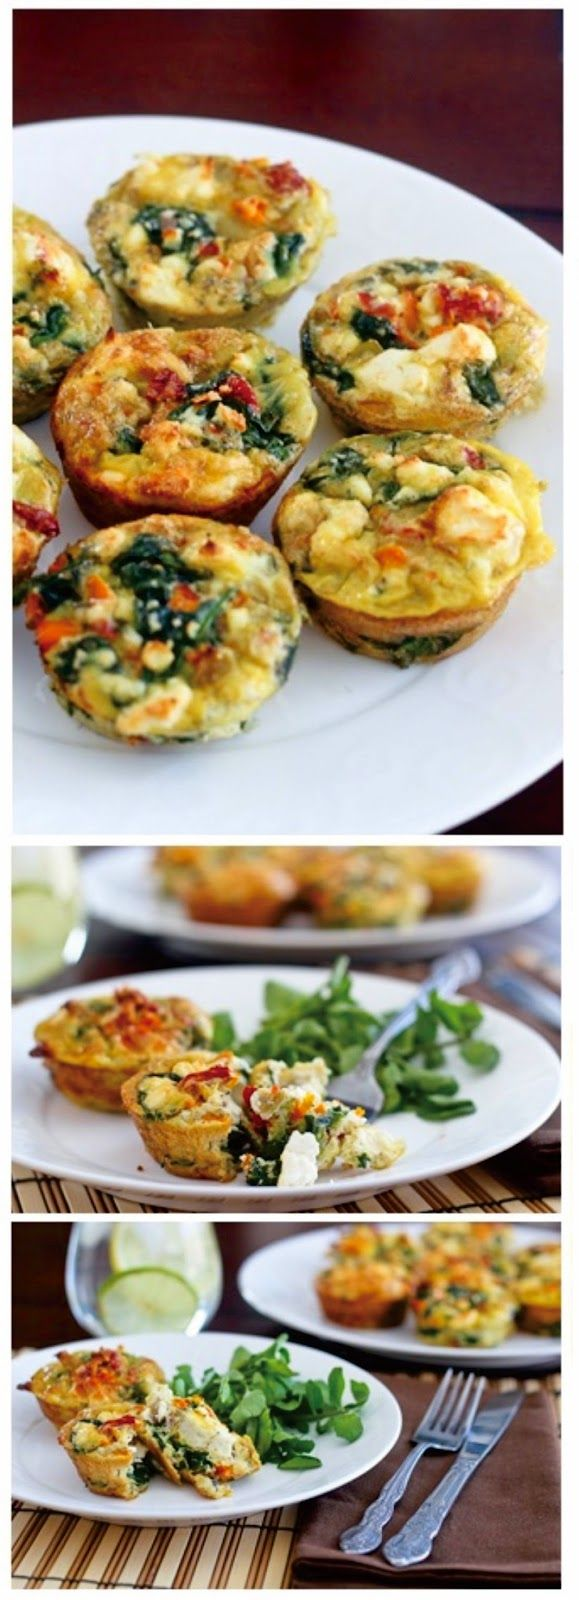 Spinach, Sundried Tomatoes and Feta Frittata Bites | I love mini ...